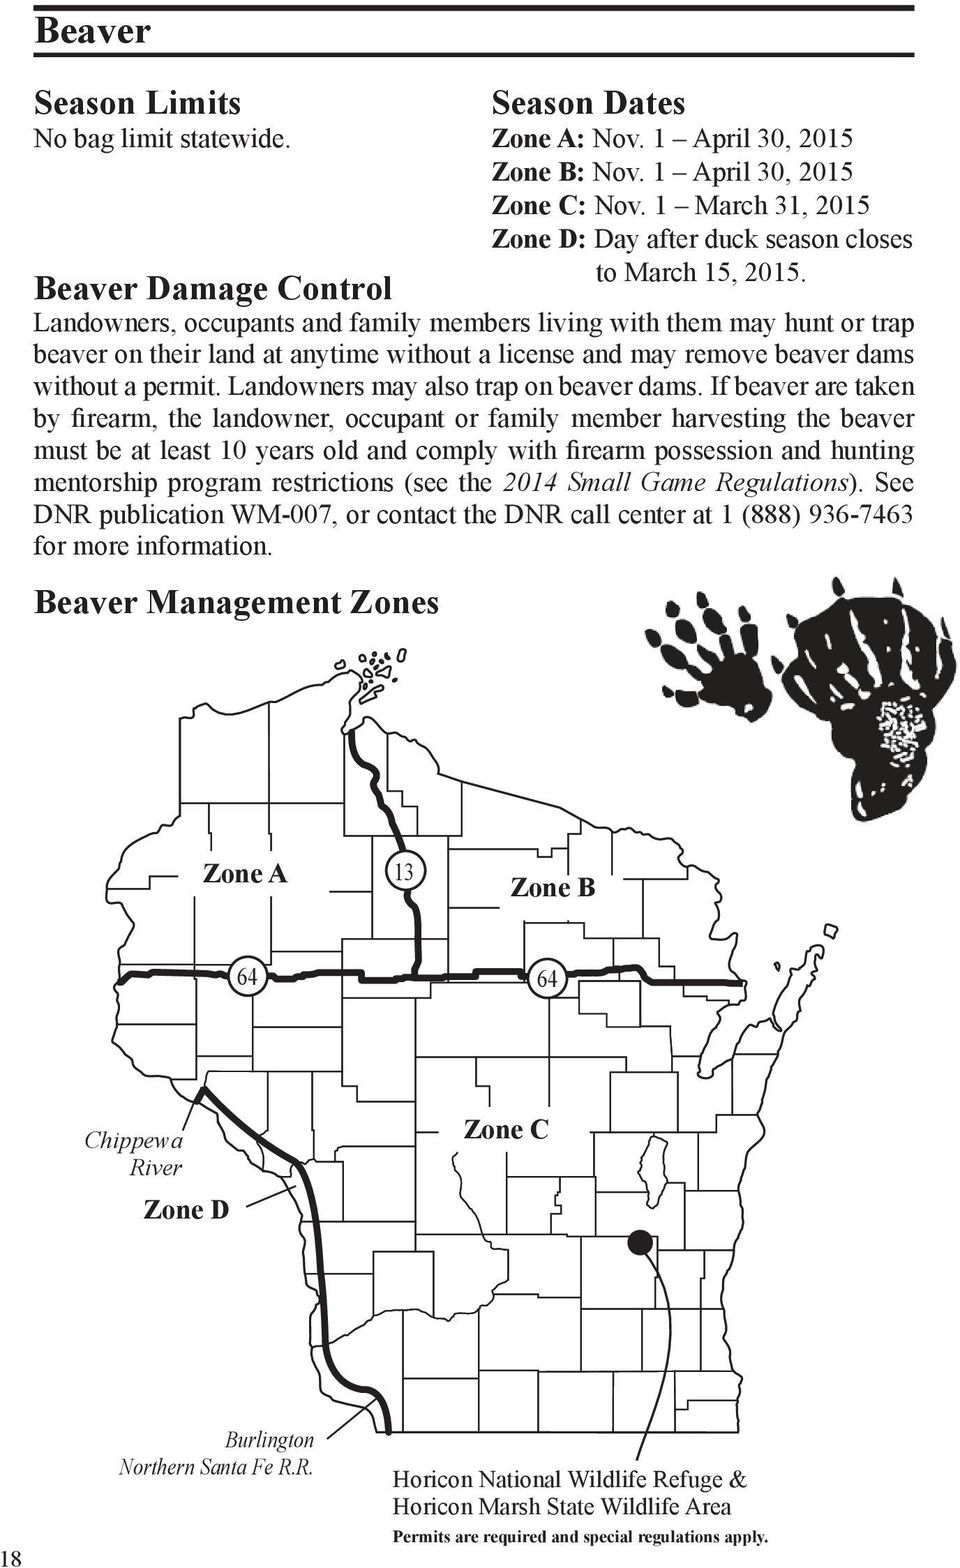 Beaver Damage Control Landowners, occupants and family members living with them may hunt or trap beaver on their land at anytime without a license and may remove beaver dams without a permit.